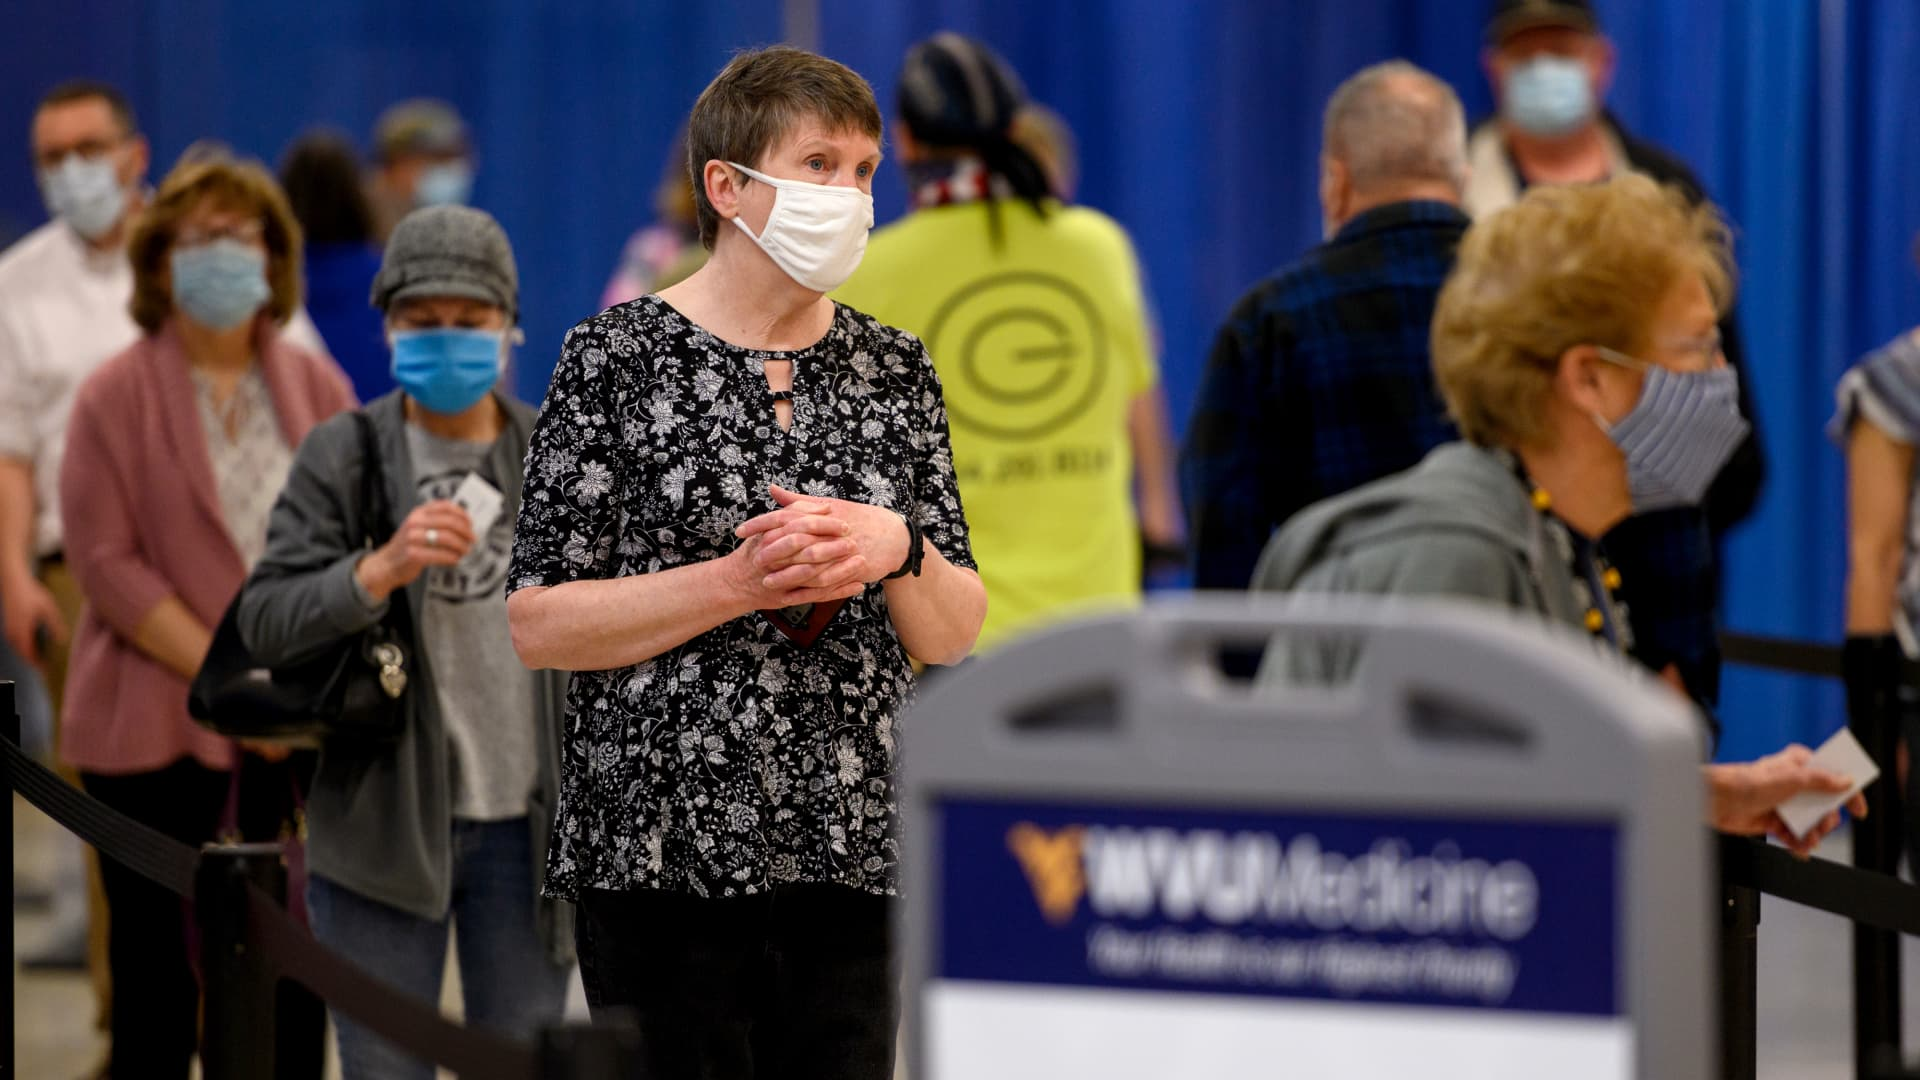 Residents wear protective masks while waiting to be vaccinated at a West Virginia United Health System Covid-19 vaccine clinic in Morgantown, West Virginia, U.S., on Thursday, March 11, 2021.